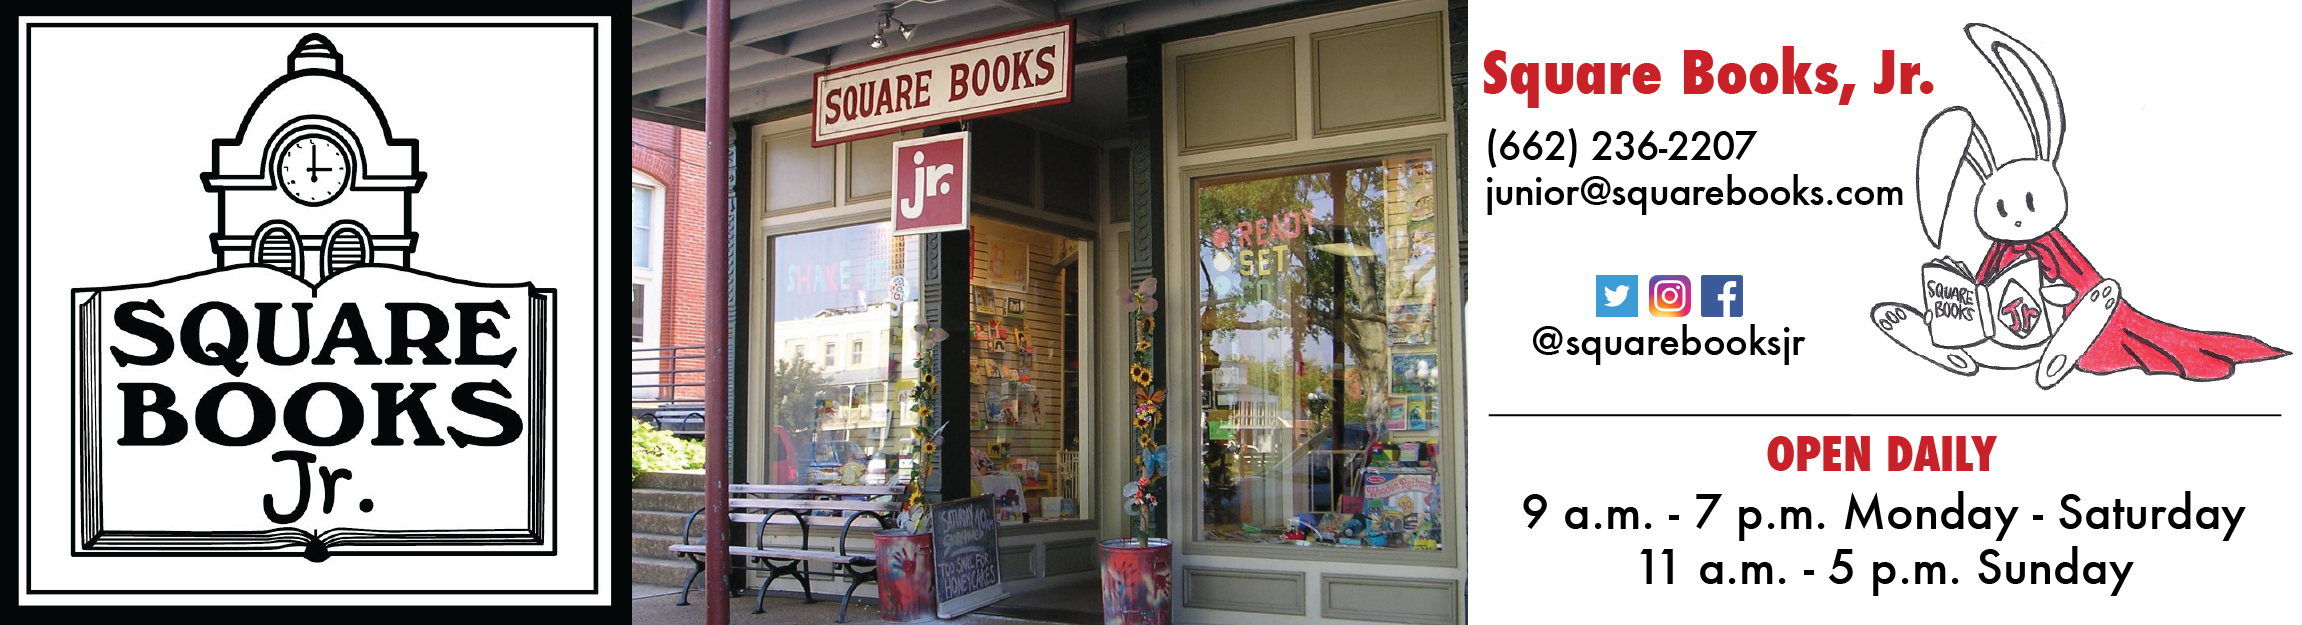 Square Books, Jr.